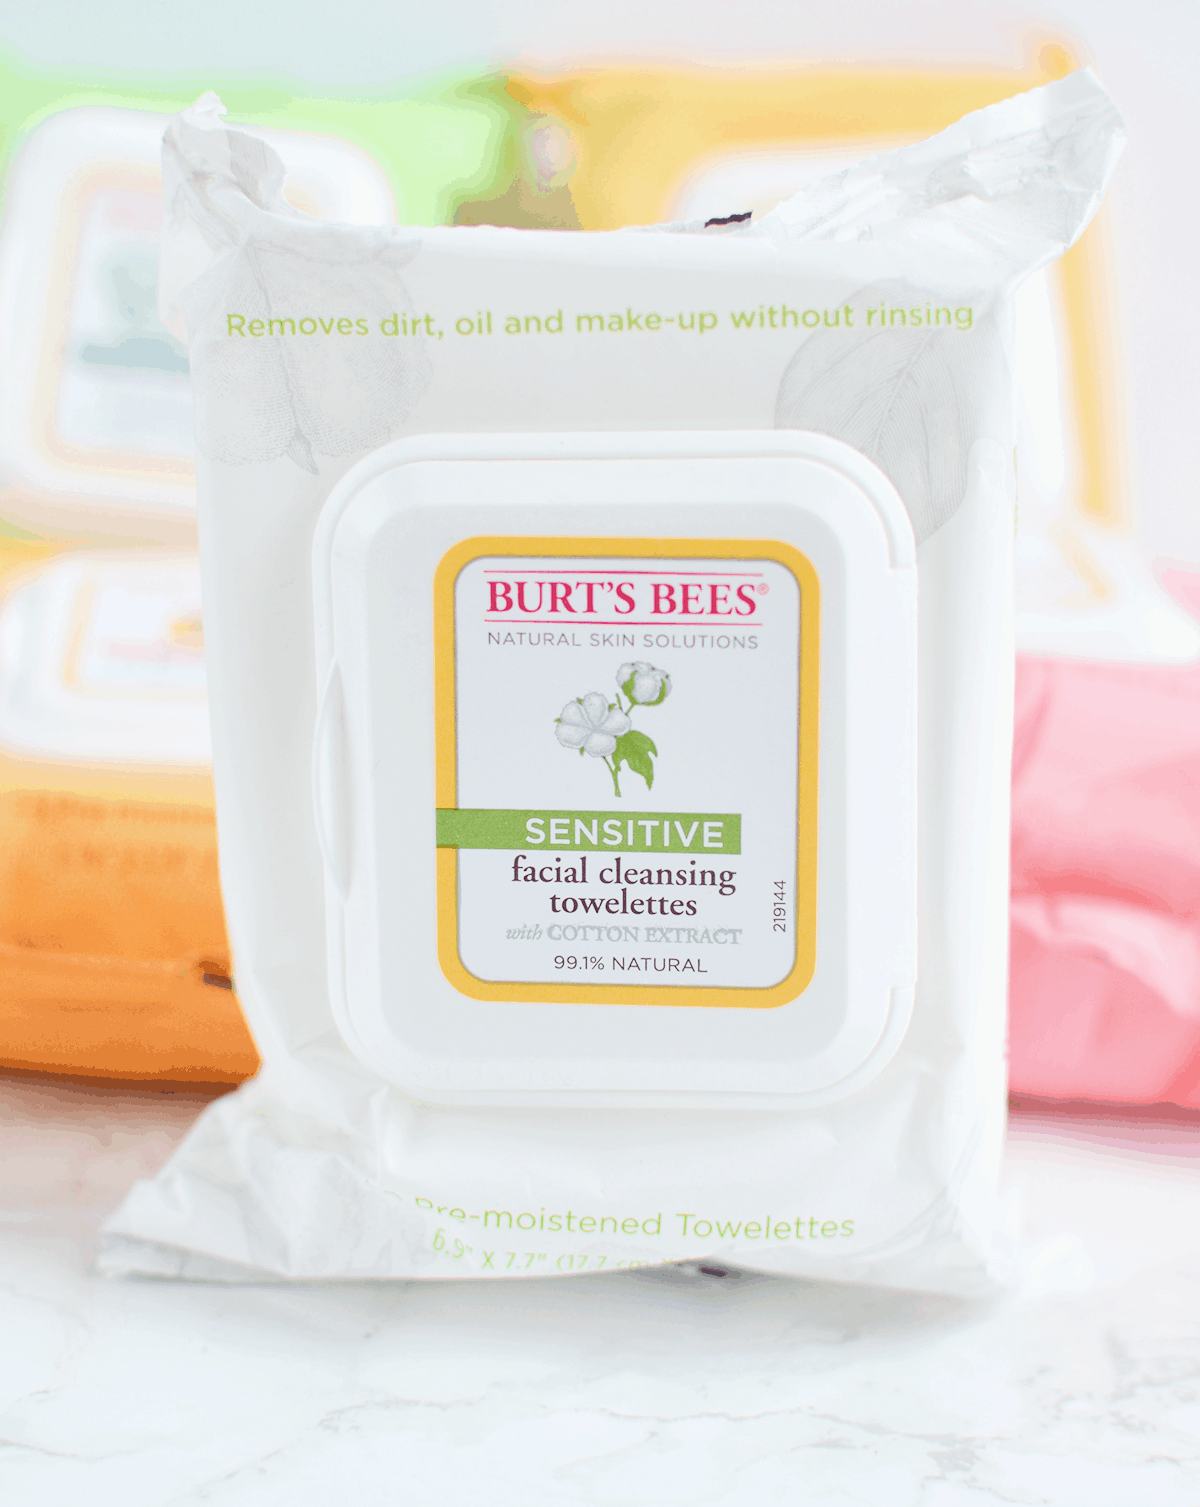 Burt's Bees Sensitive Facial Wipes are perfect for those with easily irritated skin! #NaturesSolutions AD | oliveandivyblog.com